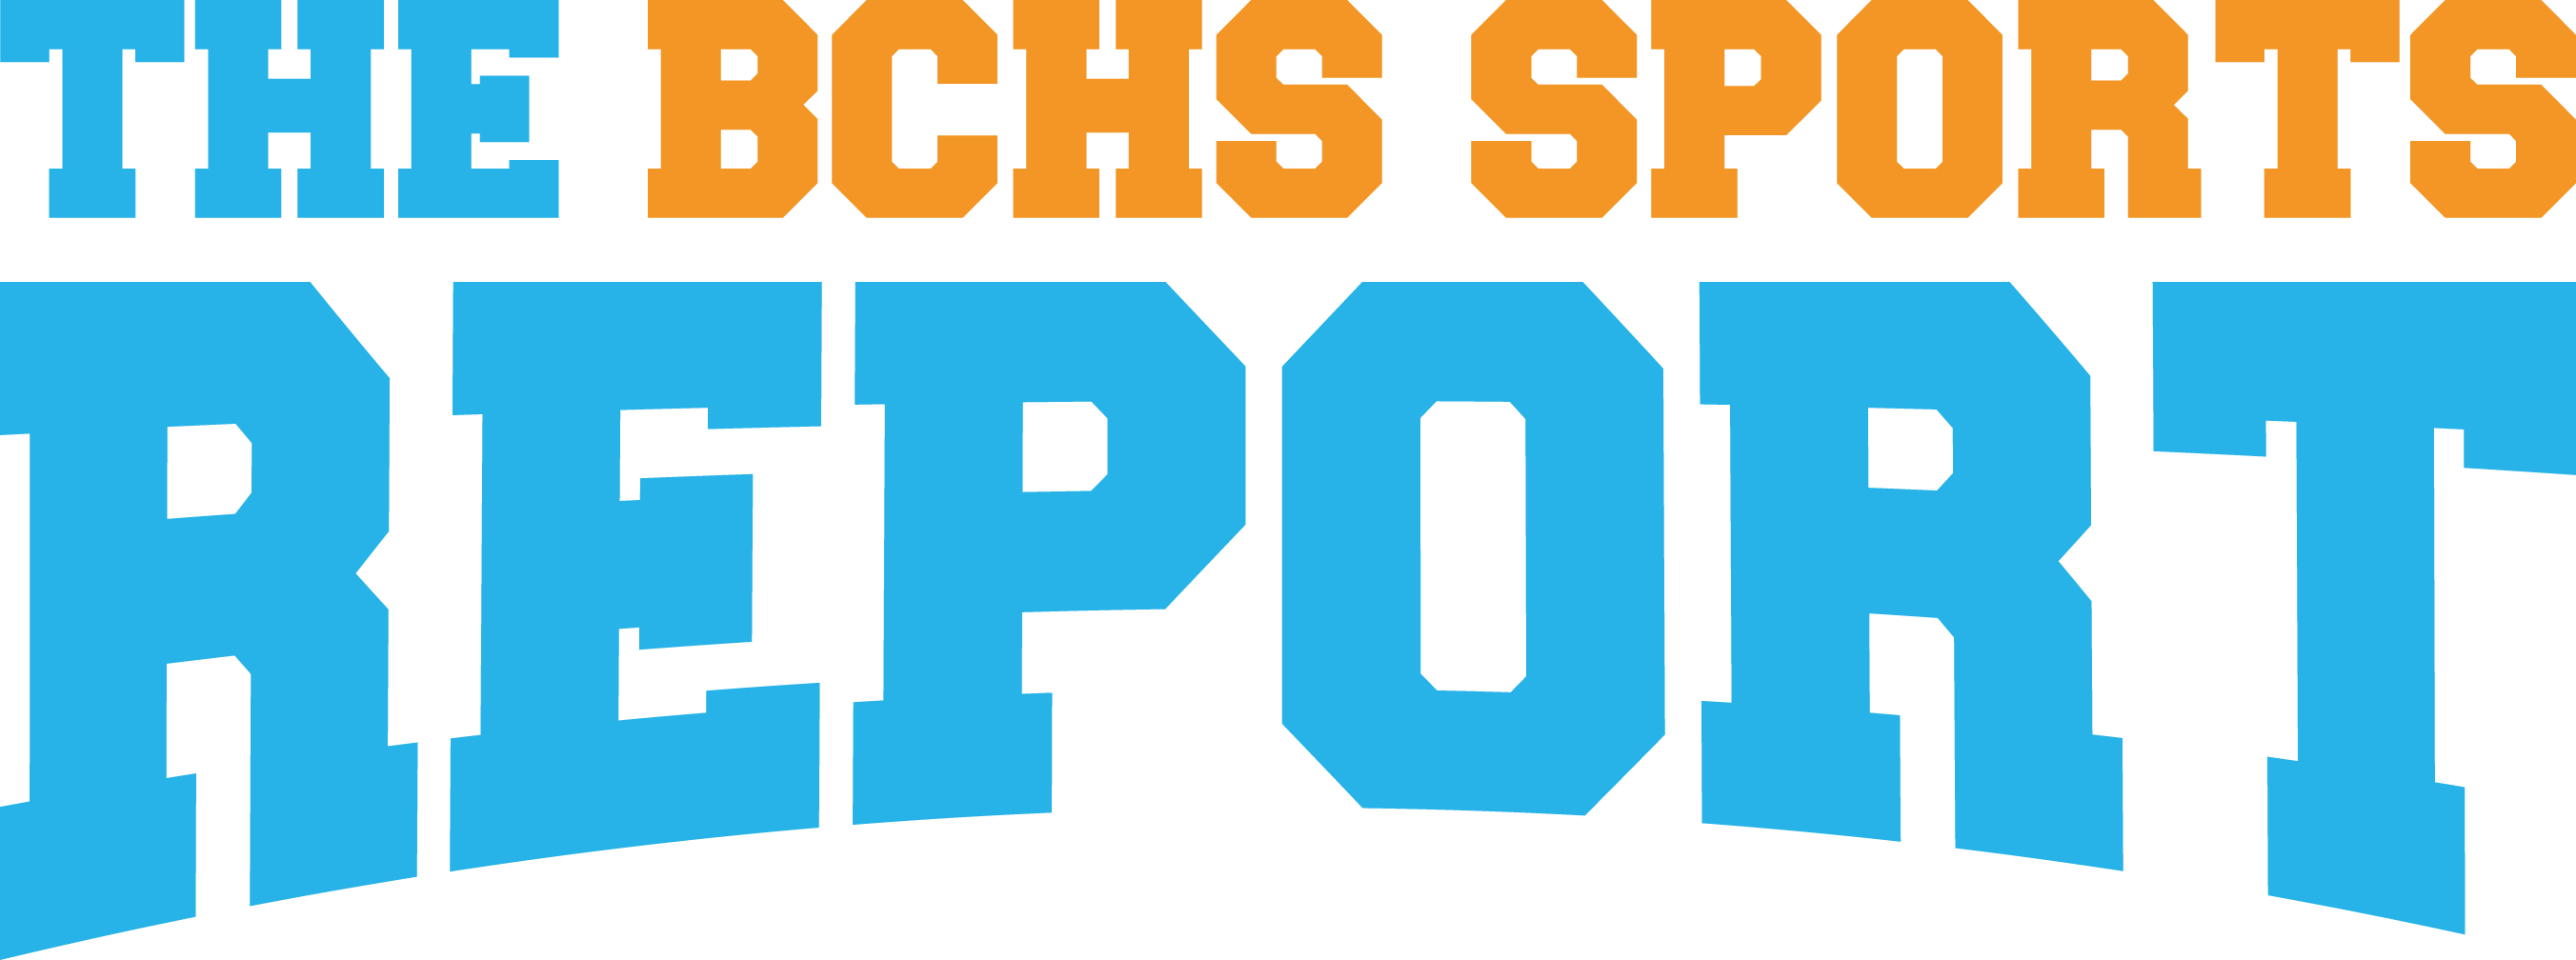 Butler County High School Sports Report